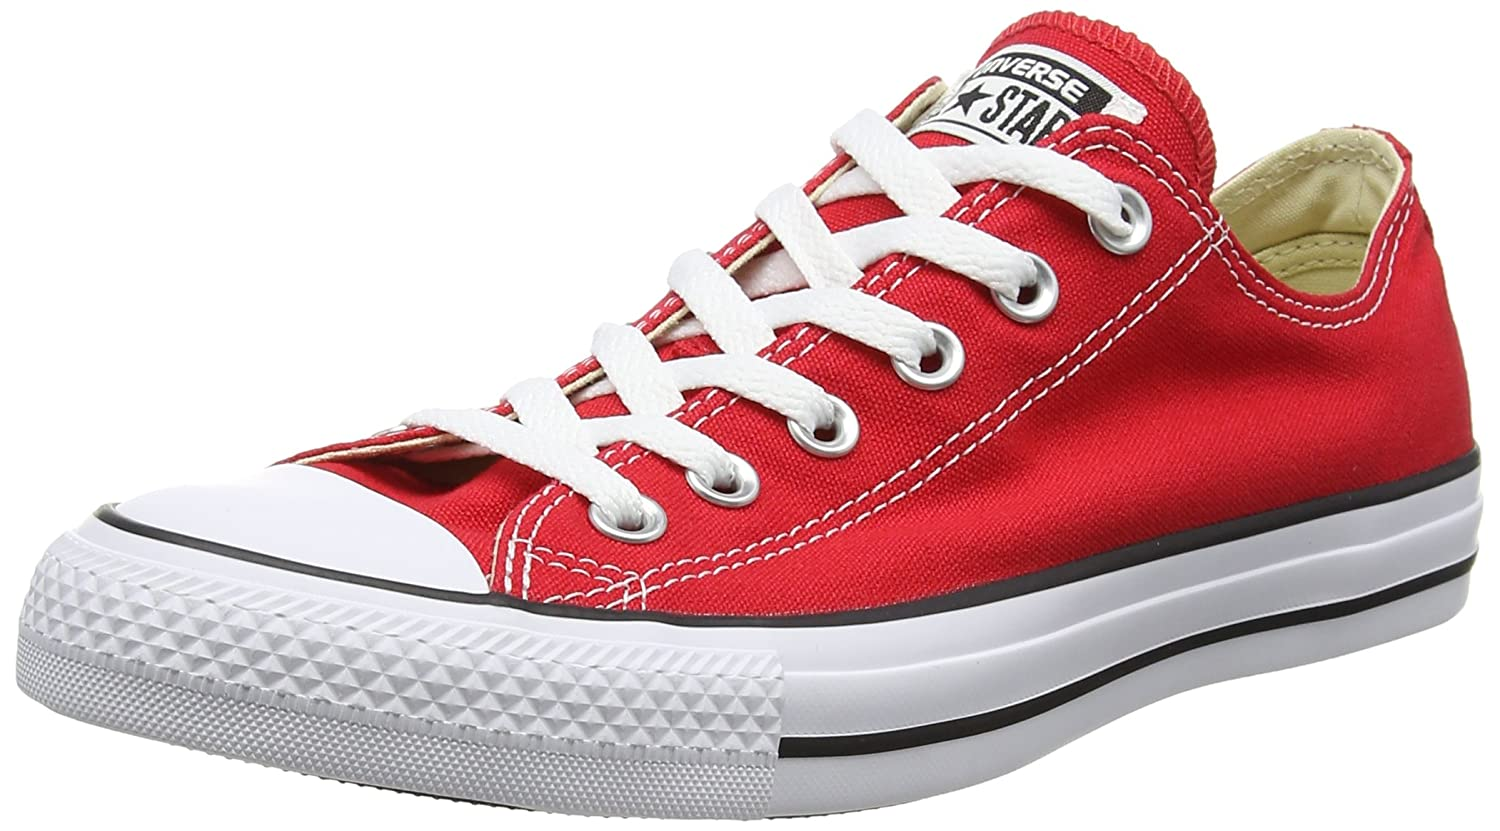 Converse Chuck Taylor Ox (Low Top) M9697 Navy B01MPZPVNE 14 B(M) US Women / 12 D(M) US Men|Red